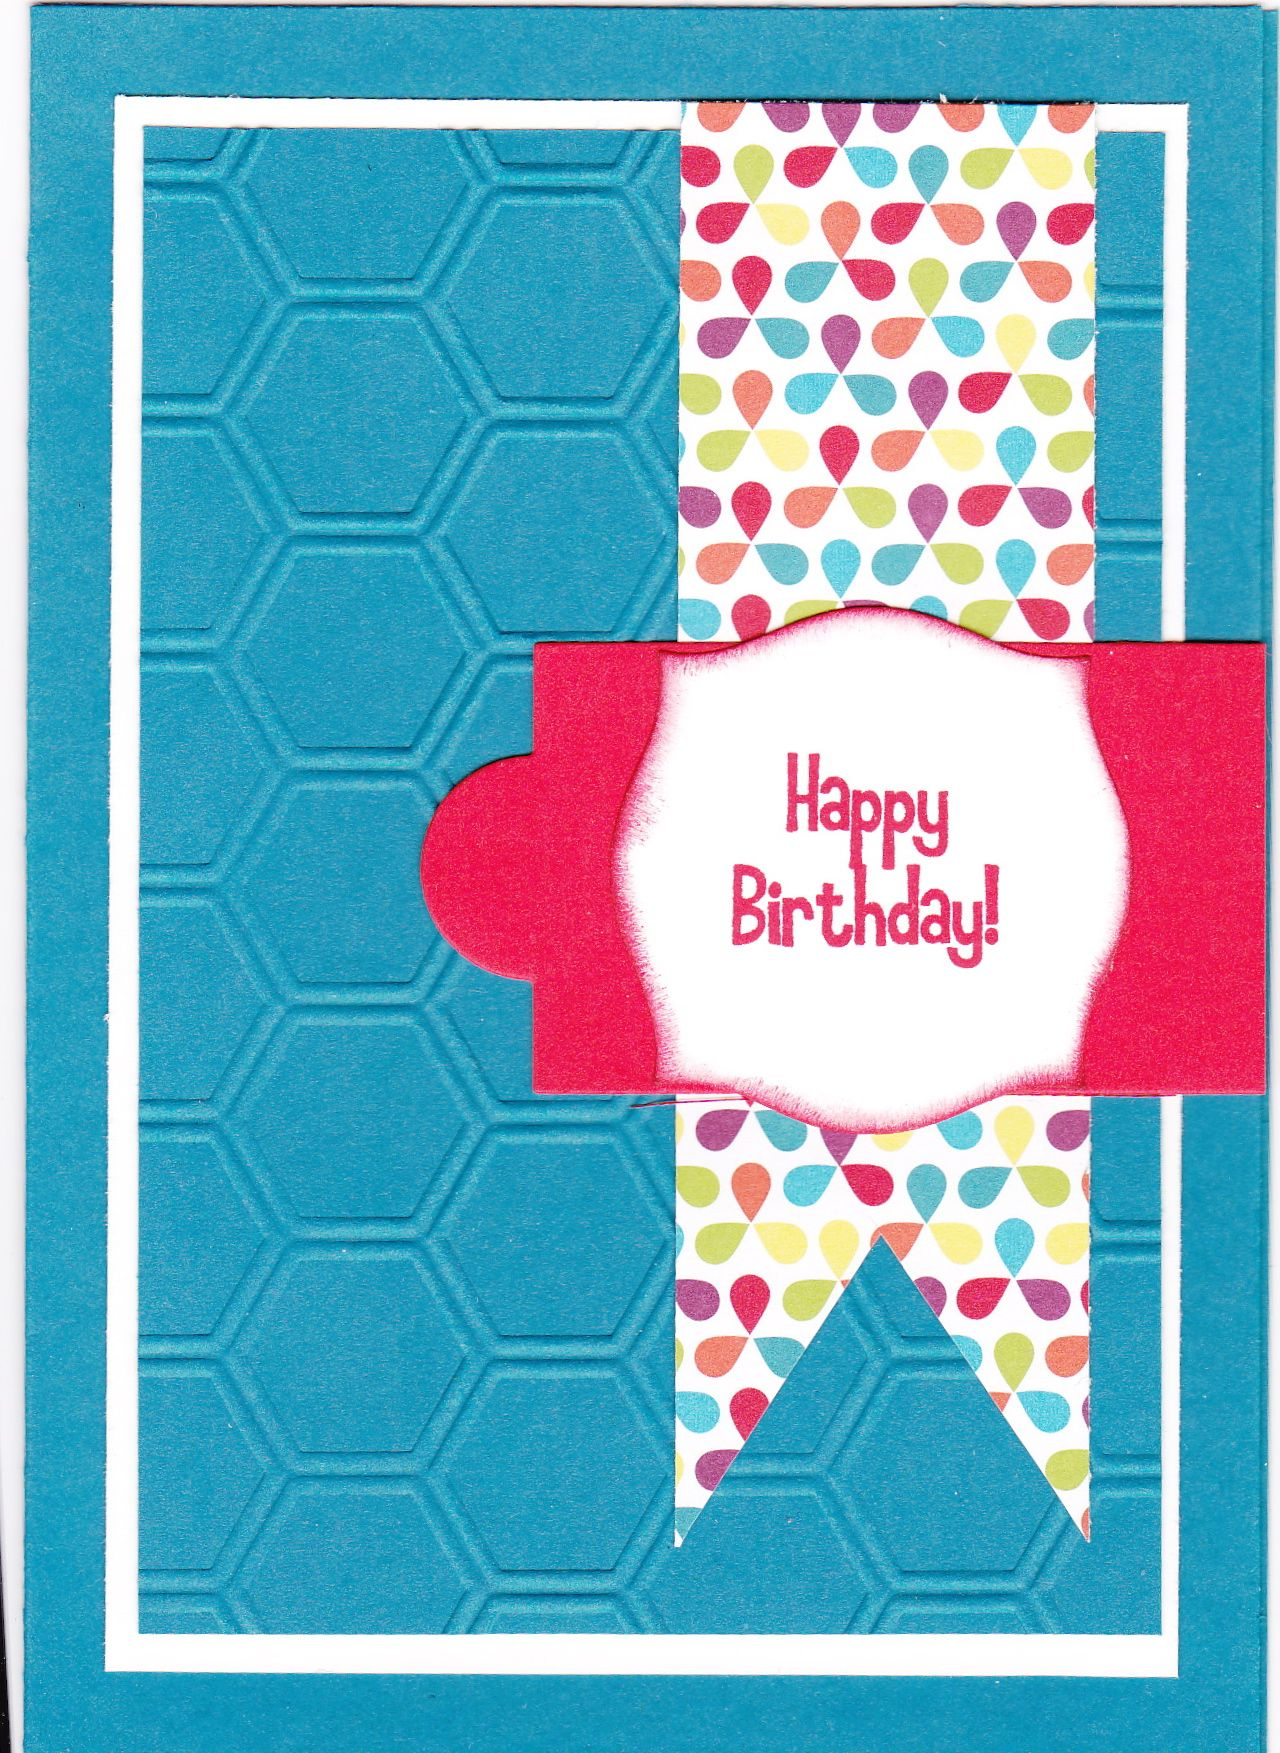 7 Year Old Boys Birthday Card